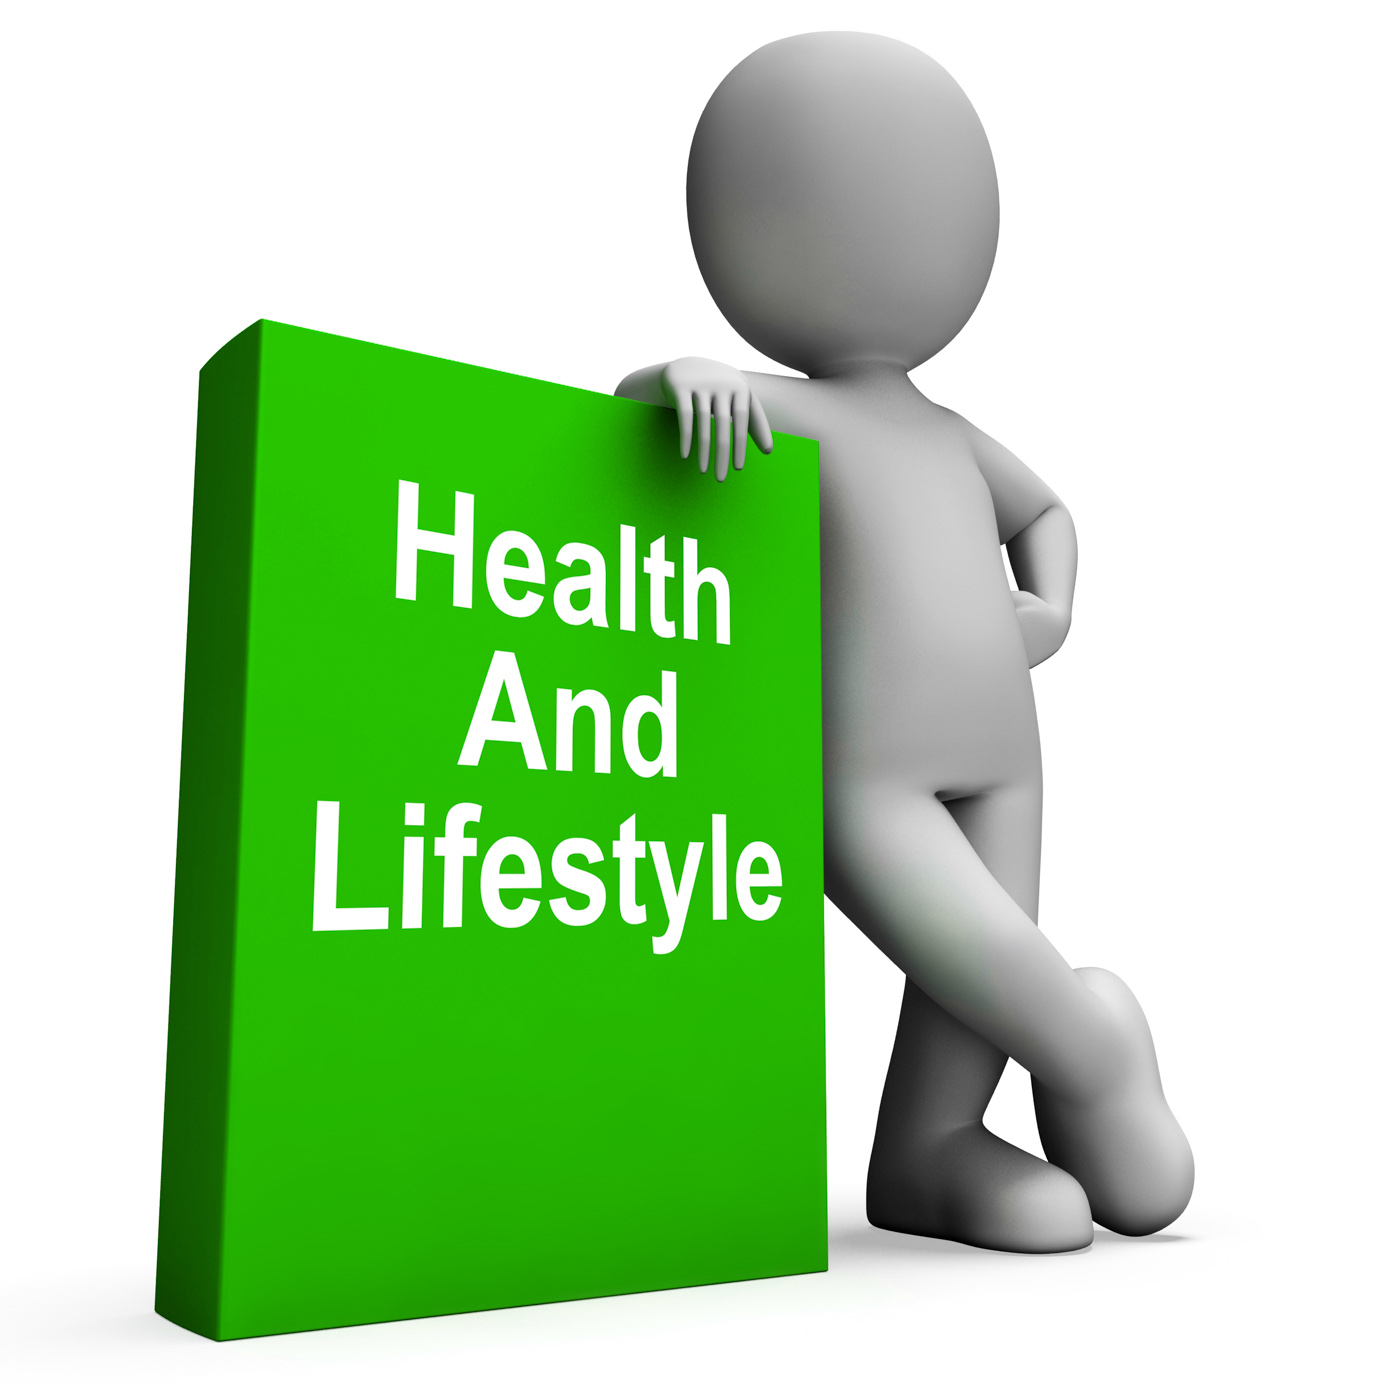 Health and lifestyle book with character shows healthy living photo